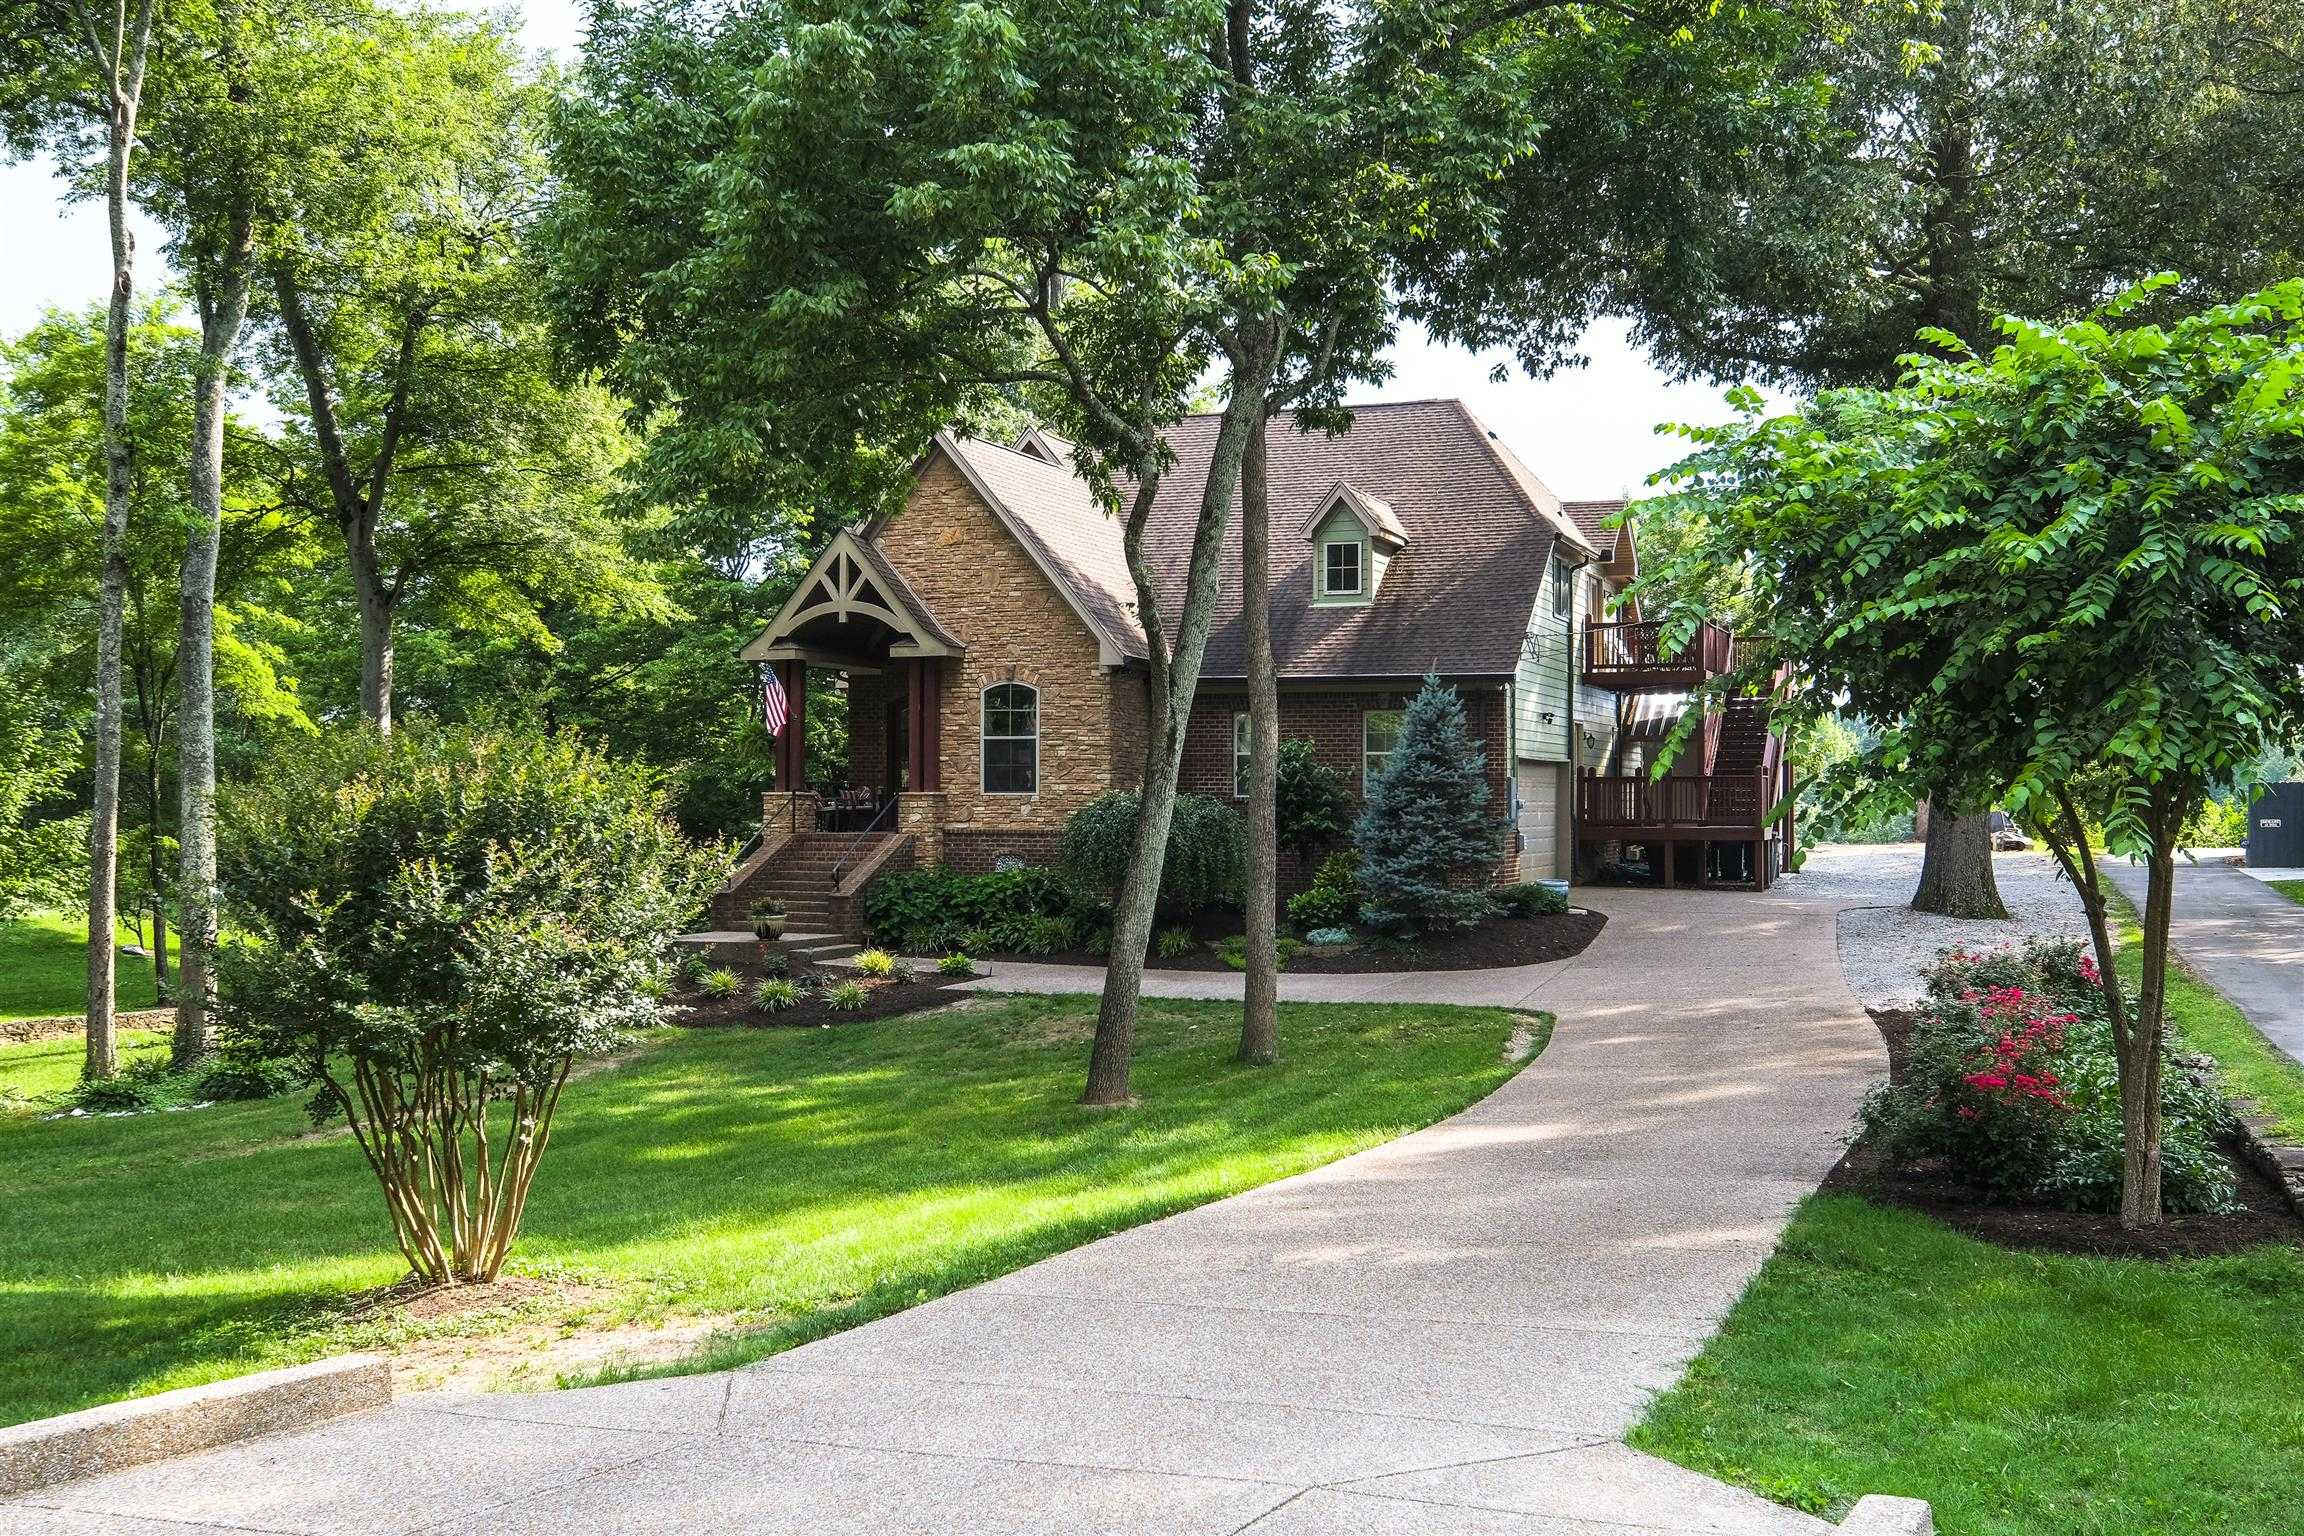 $679,000 - 4Br/3Ba -  for Sale in Madison Heights, Madison